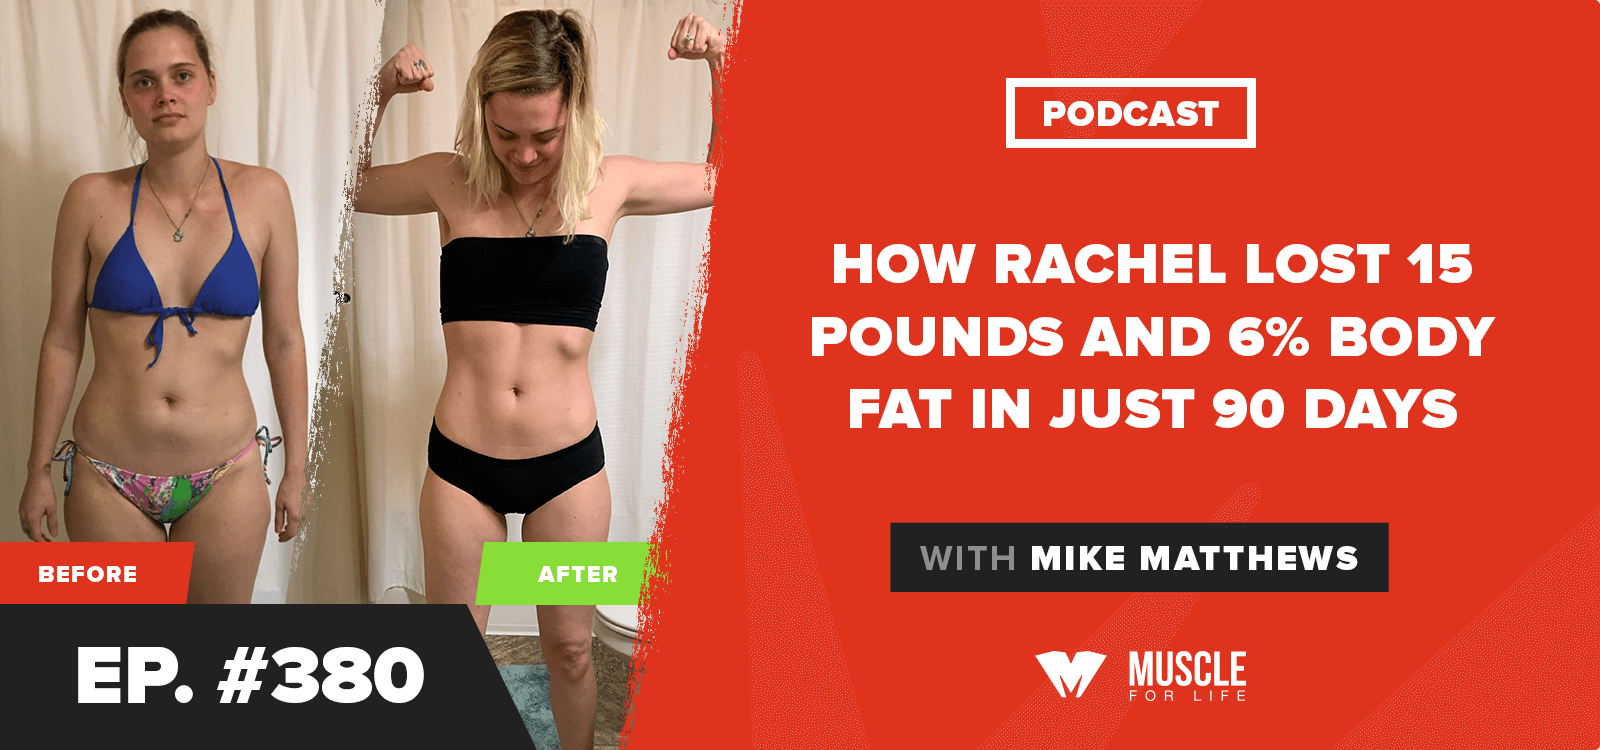 How Rachel Lost 15 Pounds and 6% Body Fat in Just 90 Days